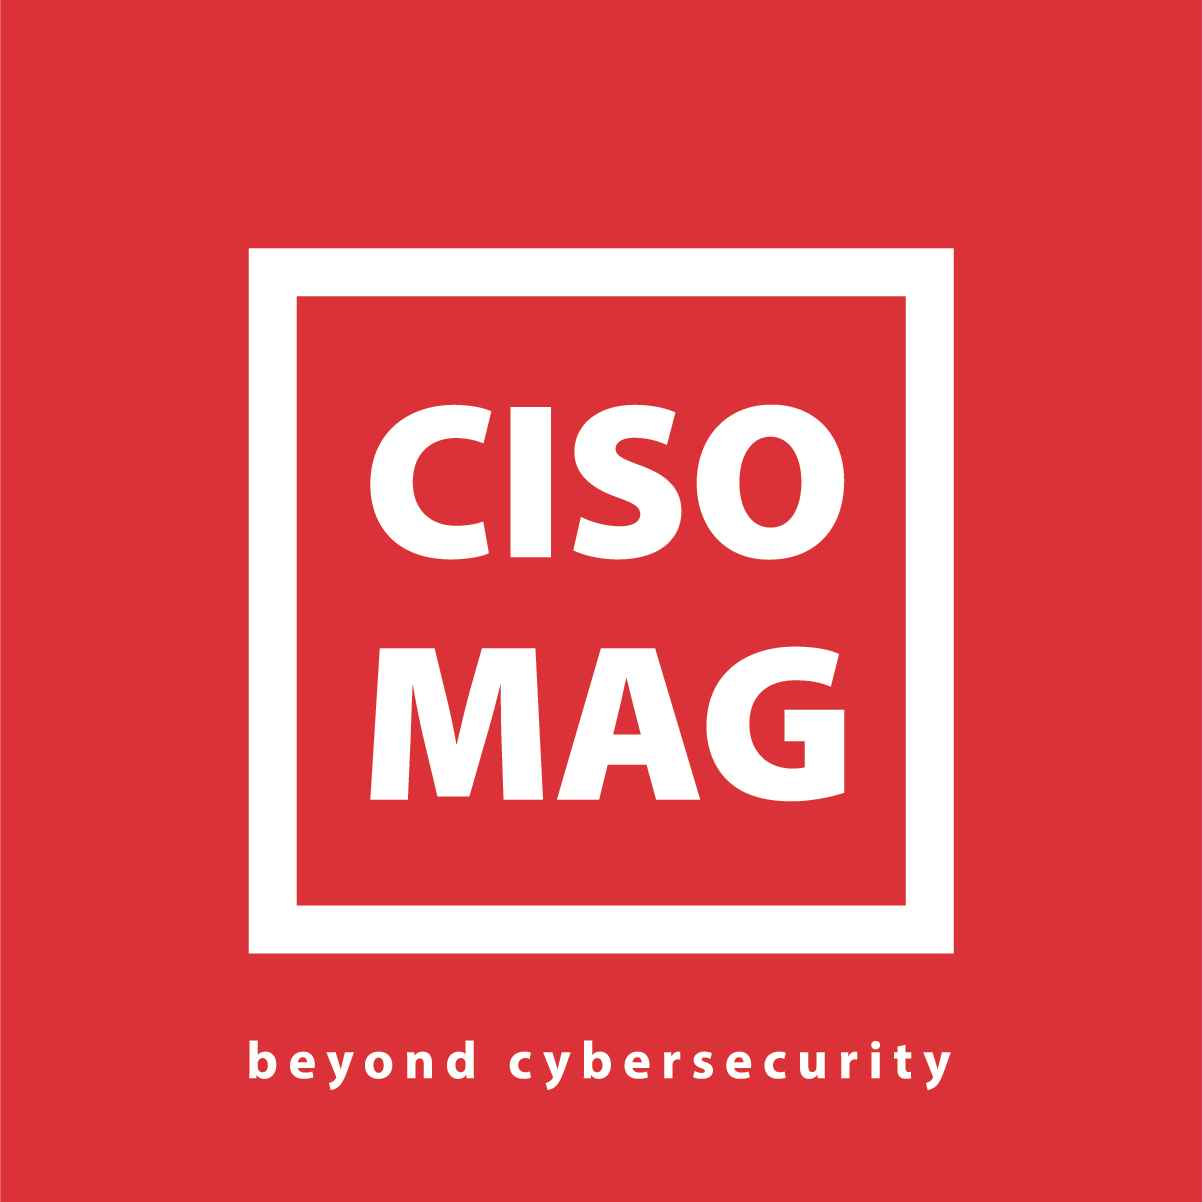 One in three employees don't use VPN to connect to the company network while working from home: CISO MAG survey